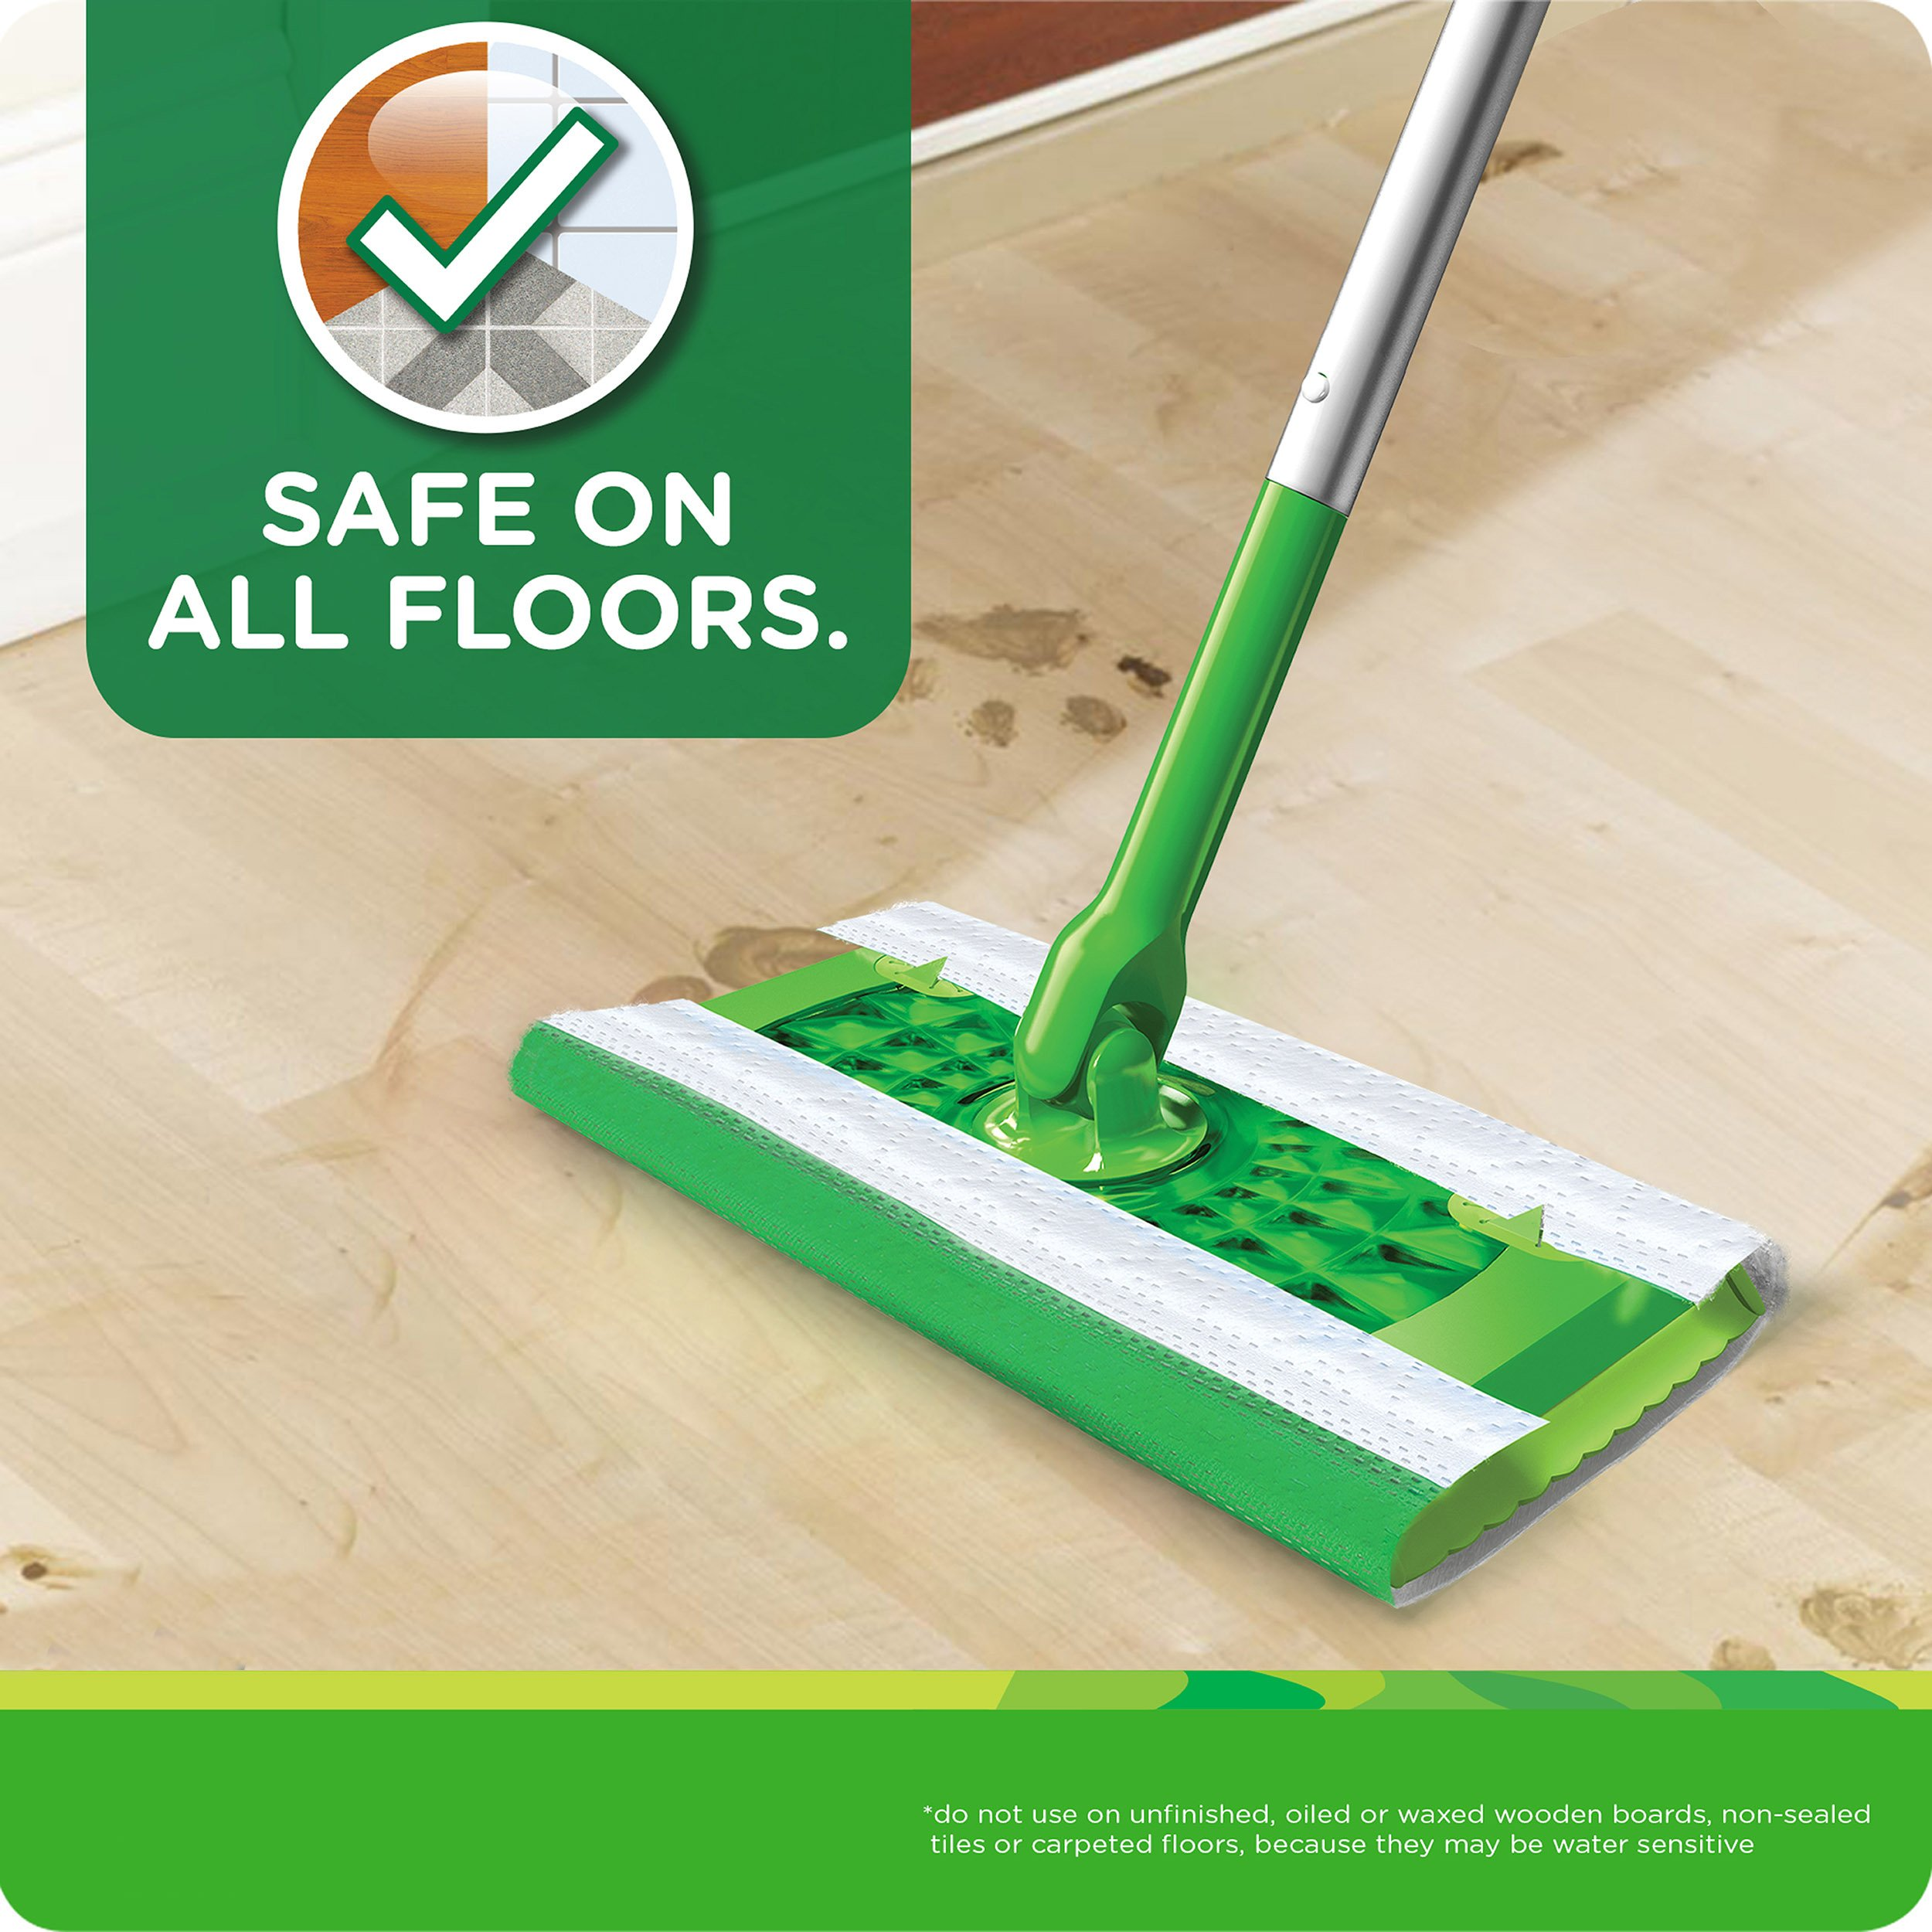 Swiffer Sweeper Wet Mop Refills for Floor Mopping and Cleaning, All Purpose Floor Cleaning Product, Lavender Vanilla and Comfort Scent, 36 Count by Swiffer (Image #4)